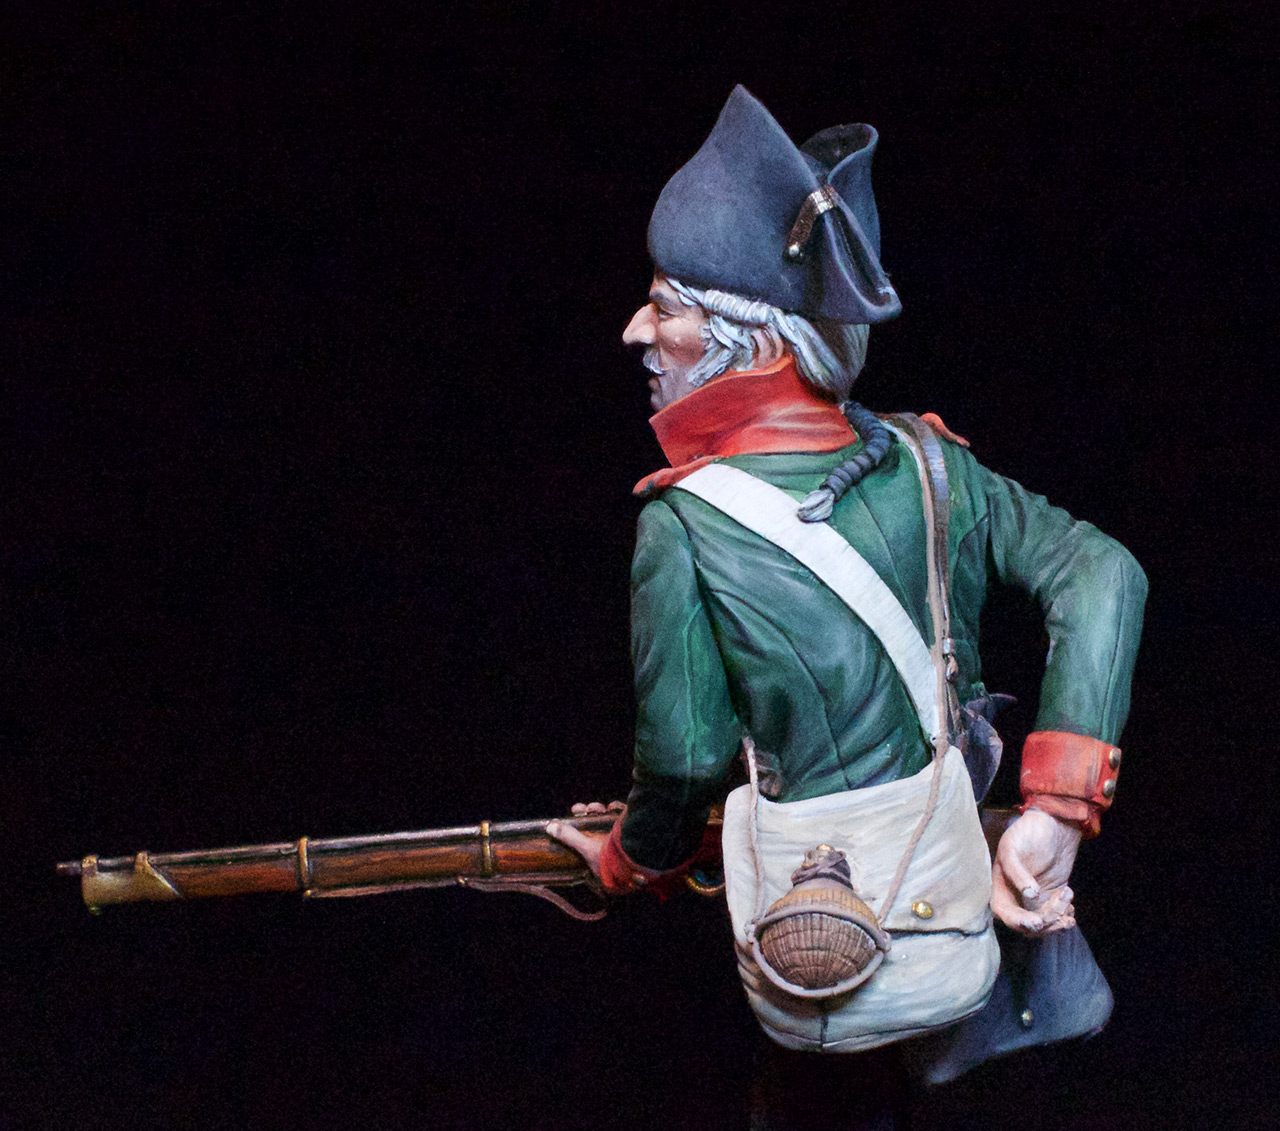 Figures: Russian grenadier, 1796, photo #6